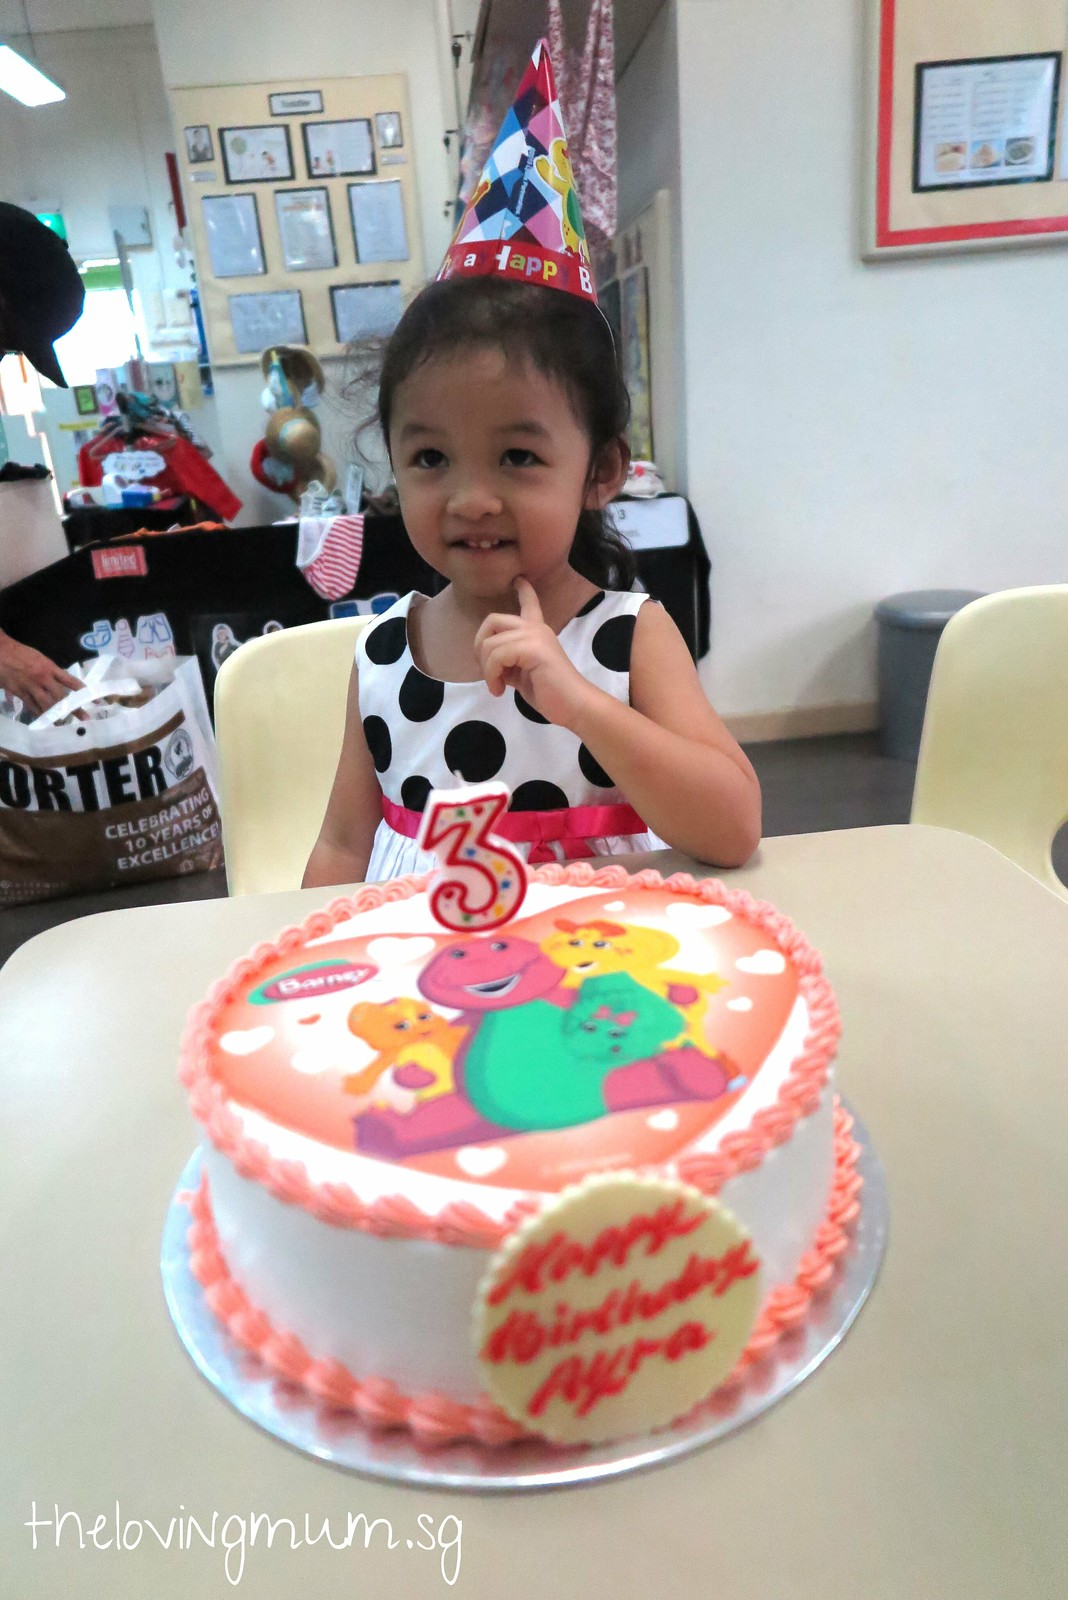 12 Sep 2014 - Ayra Birthday Celebration at Playgroup